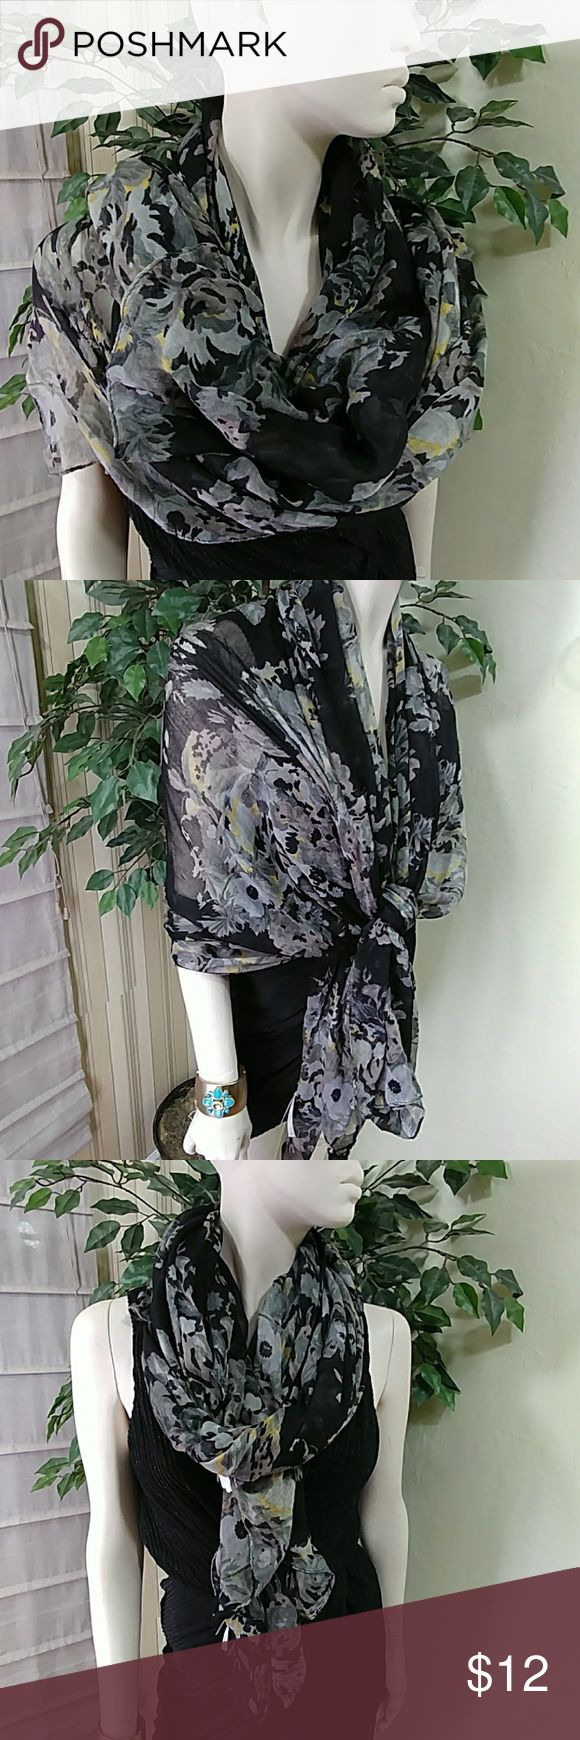 """Charlotte Ruse Floral Blue Scarf Charlotte Ruse Flowery Paisley print  scarf, color blue and grey with small yellow strings, big size 70"""" L x 44"""" W, made of light polyester, great to complement your outfit, comes as a customer return item in good cosmetic condition. Charlotte Russe Accessories Scarves & Wraps"""